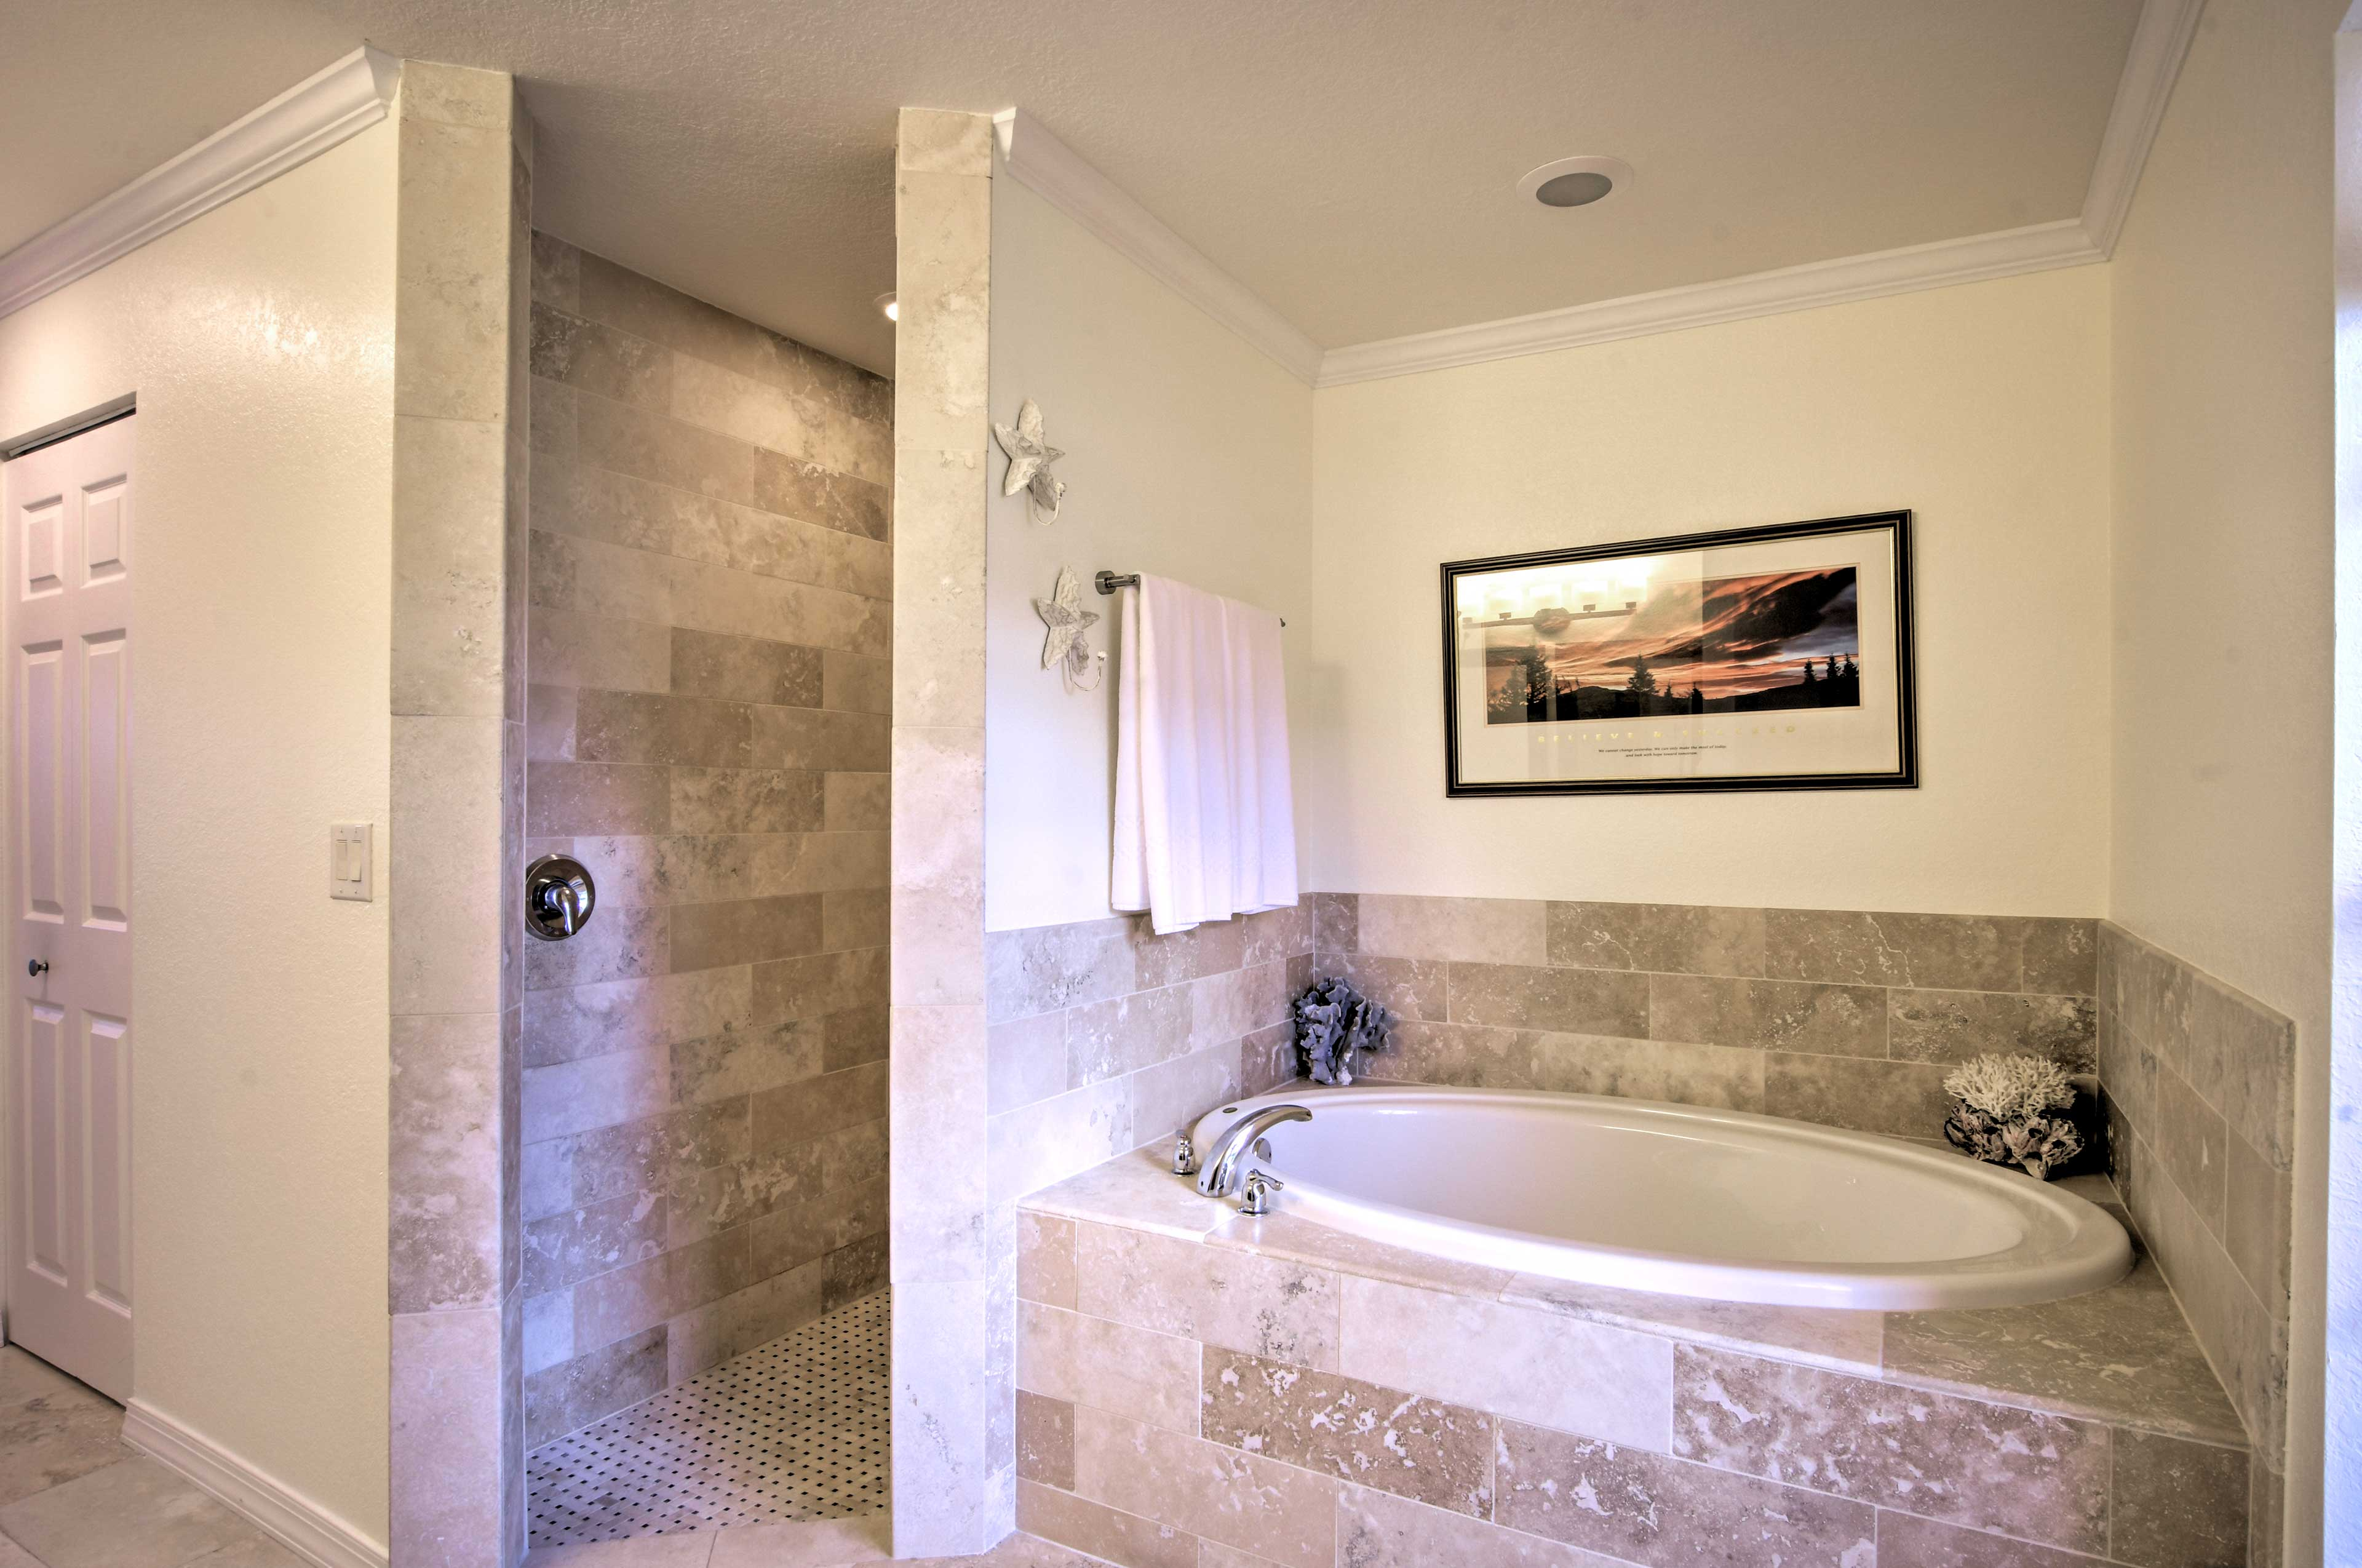 Sink into the tub or step into the shower.